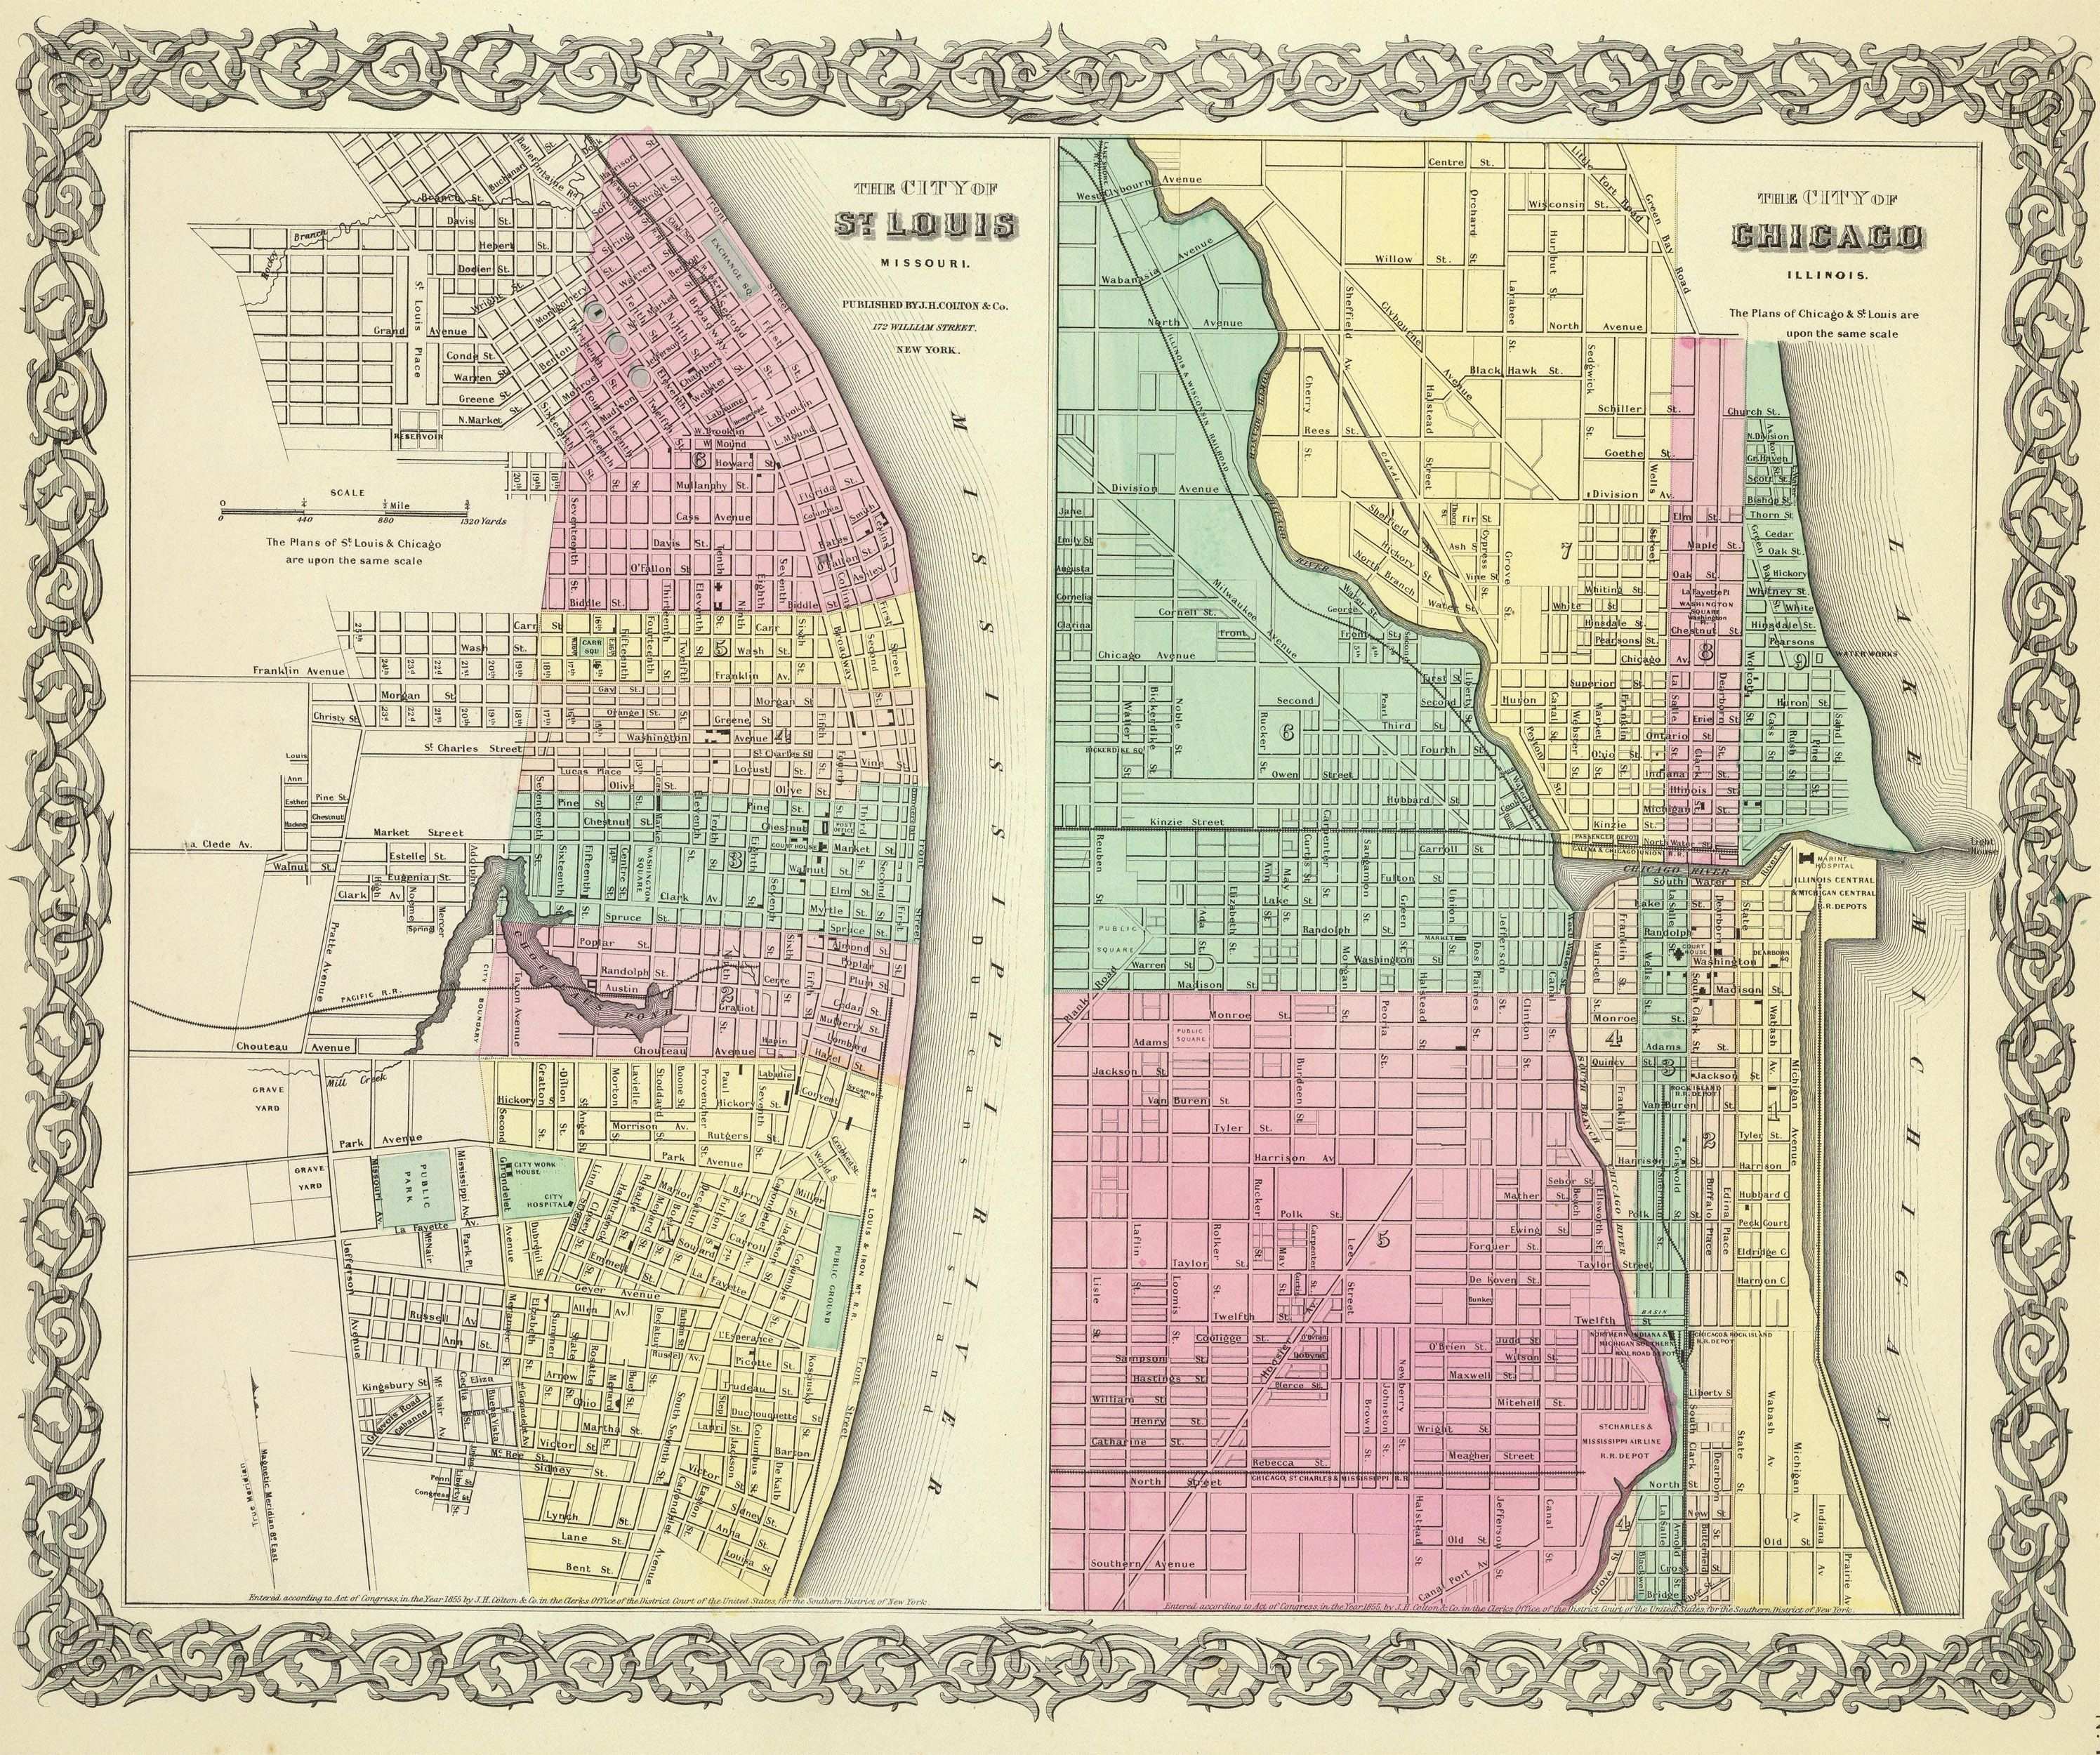 1856 Cities of St. Louis and Chicago | Maps, MN, Carver Co ... on illinois counties, alaska map with cities, illinois zip code map, map of illinois cities, map of germany with cities, map of norway with cities, map of europe with cities, map of texas with cities, louisiana parish map with cities, il state map with cities, illinois township map, map of pennsylvania with cities, bosnia map with cities, map of the philippines with cities, map of united states with cities, map of canada with cities, oklahoma map with all cities, map of china with cities, india map with cities,